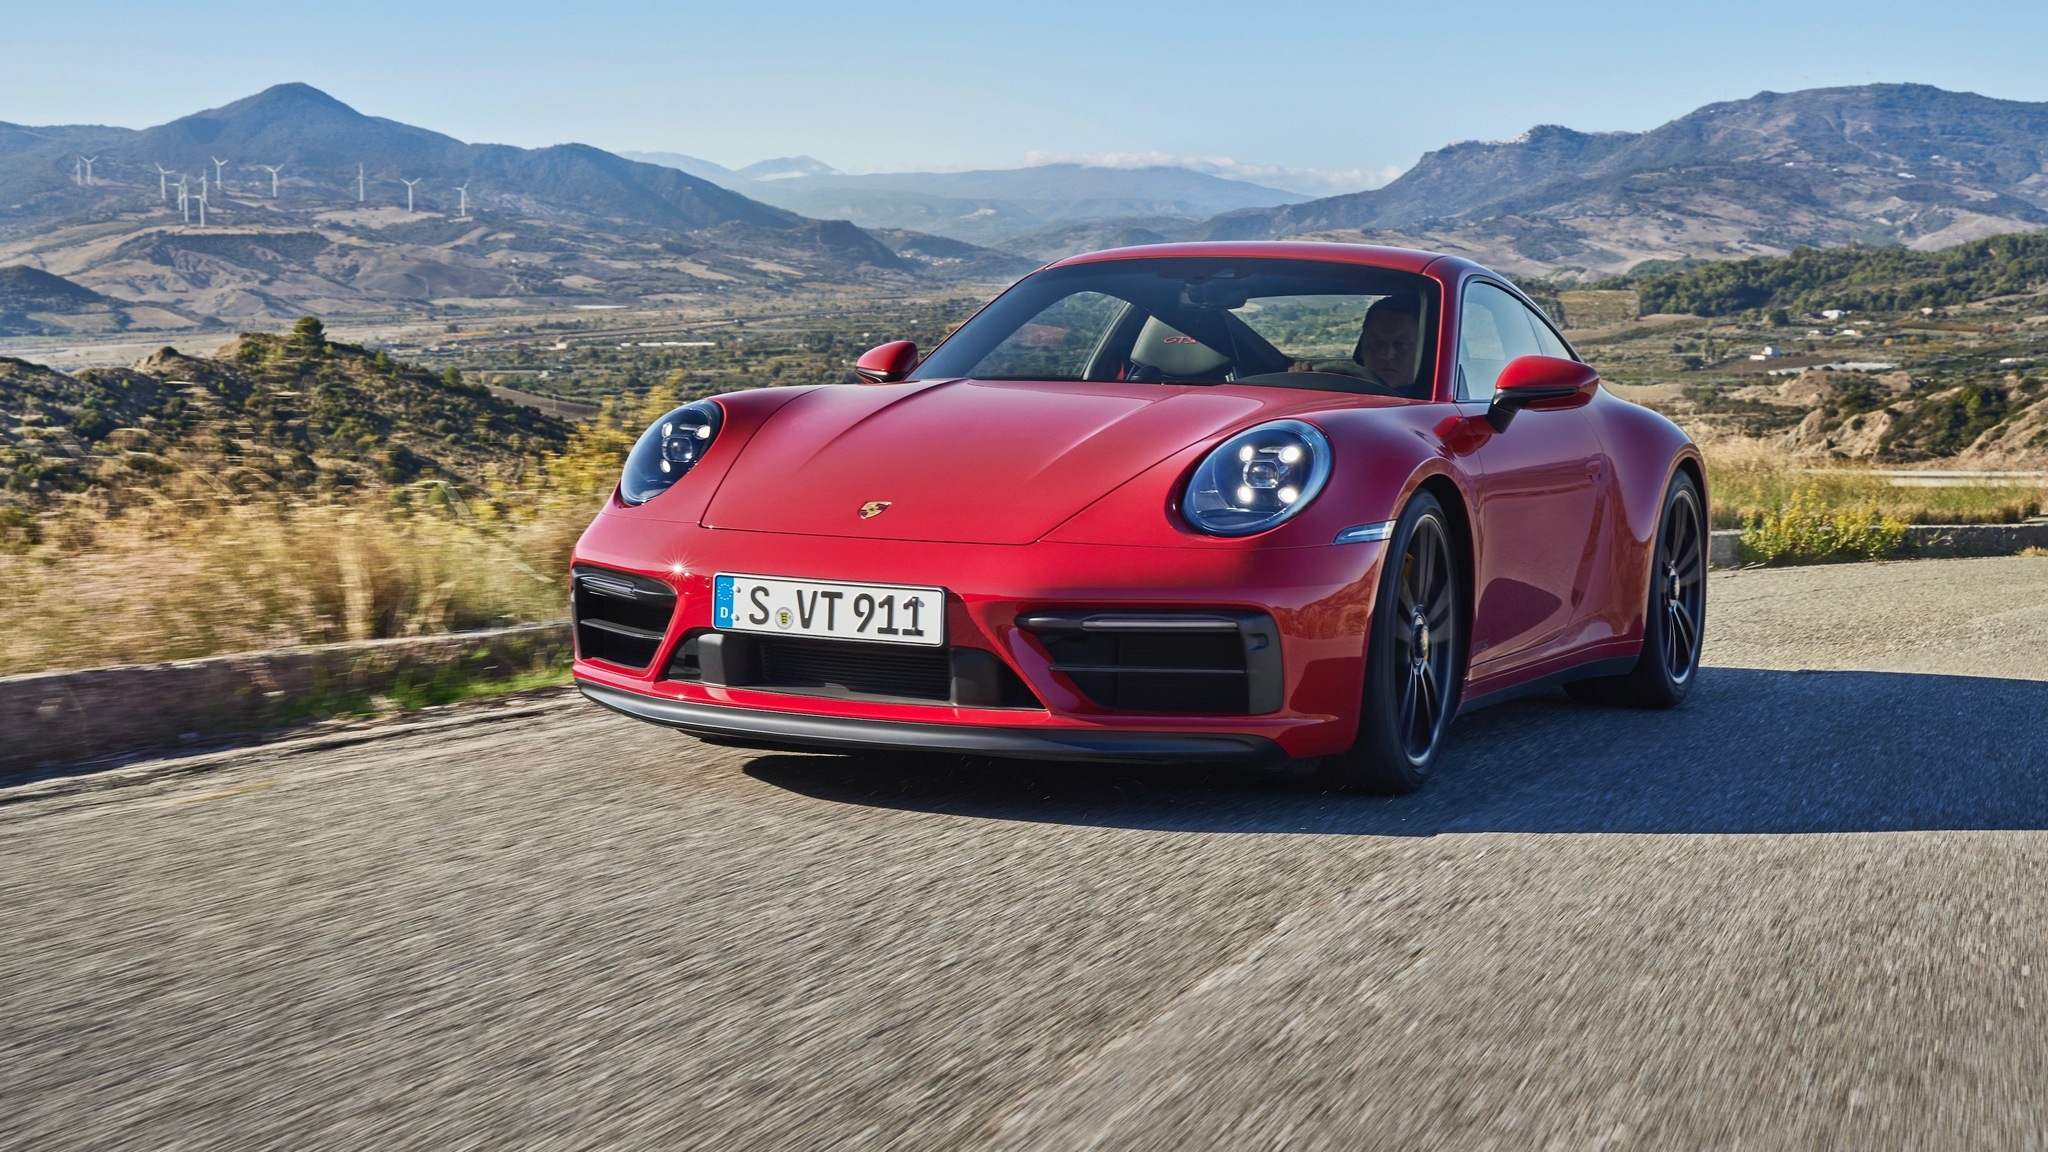 2022 Porsche 911 GTS Arrives for $136,700, Fits Snugly Between Carrera S and GT3